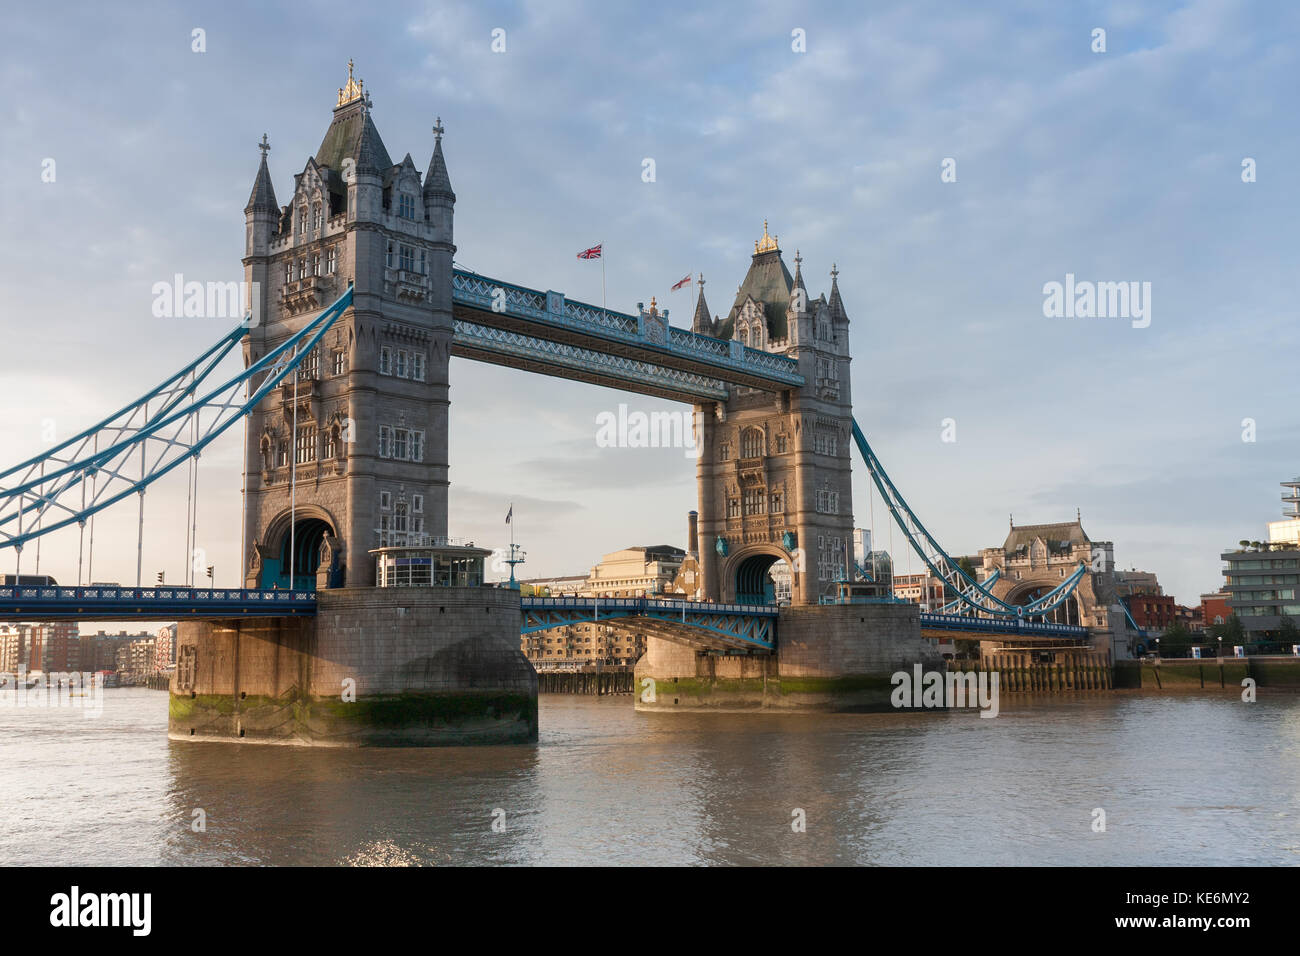 Tower Bridge am Morgen in London, England. Stockbild